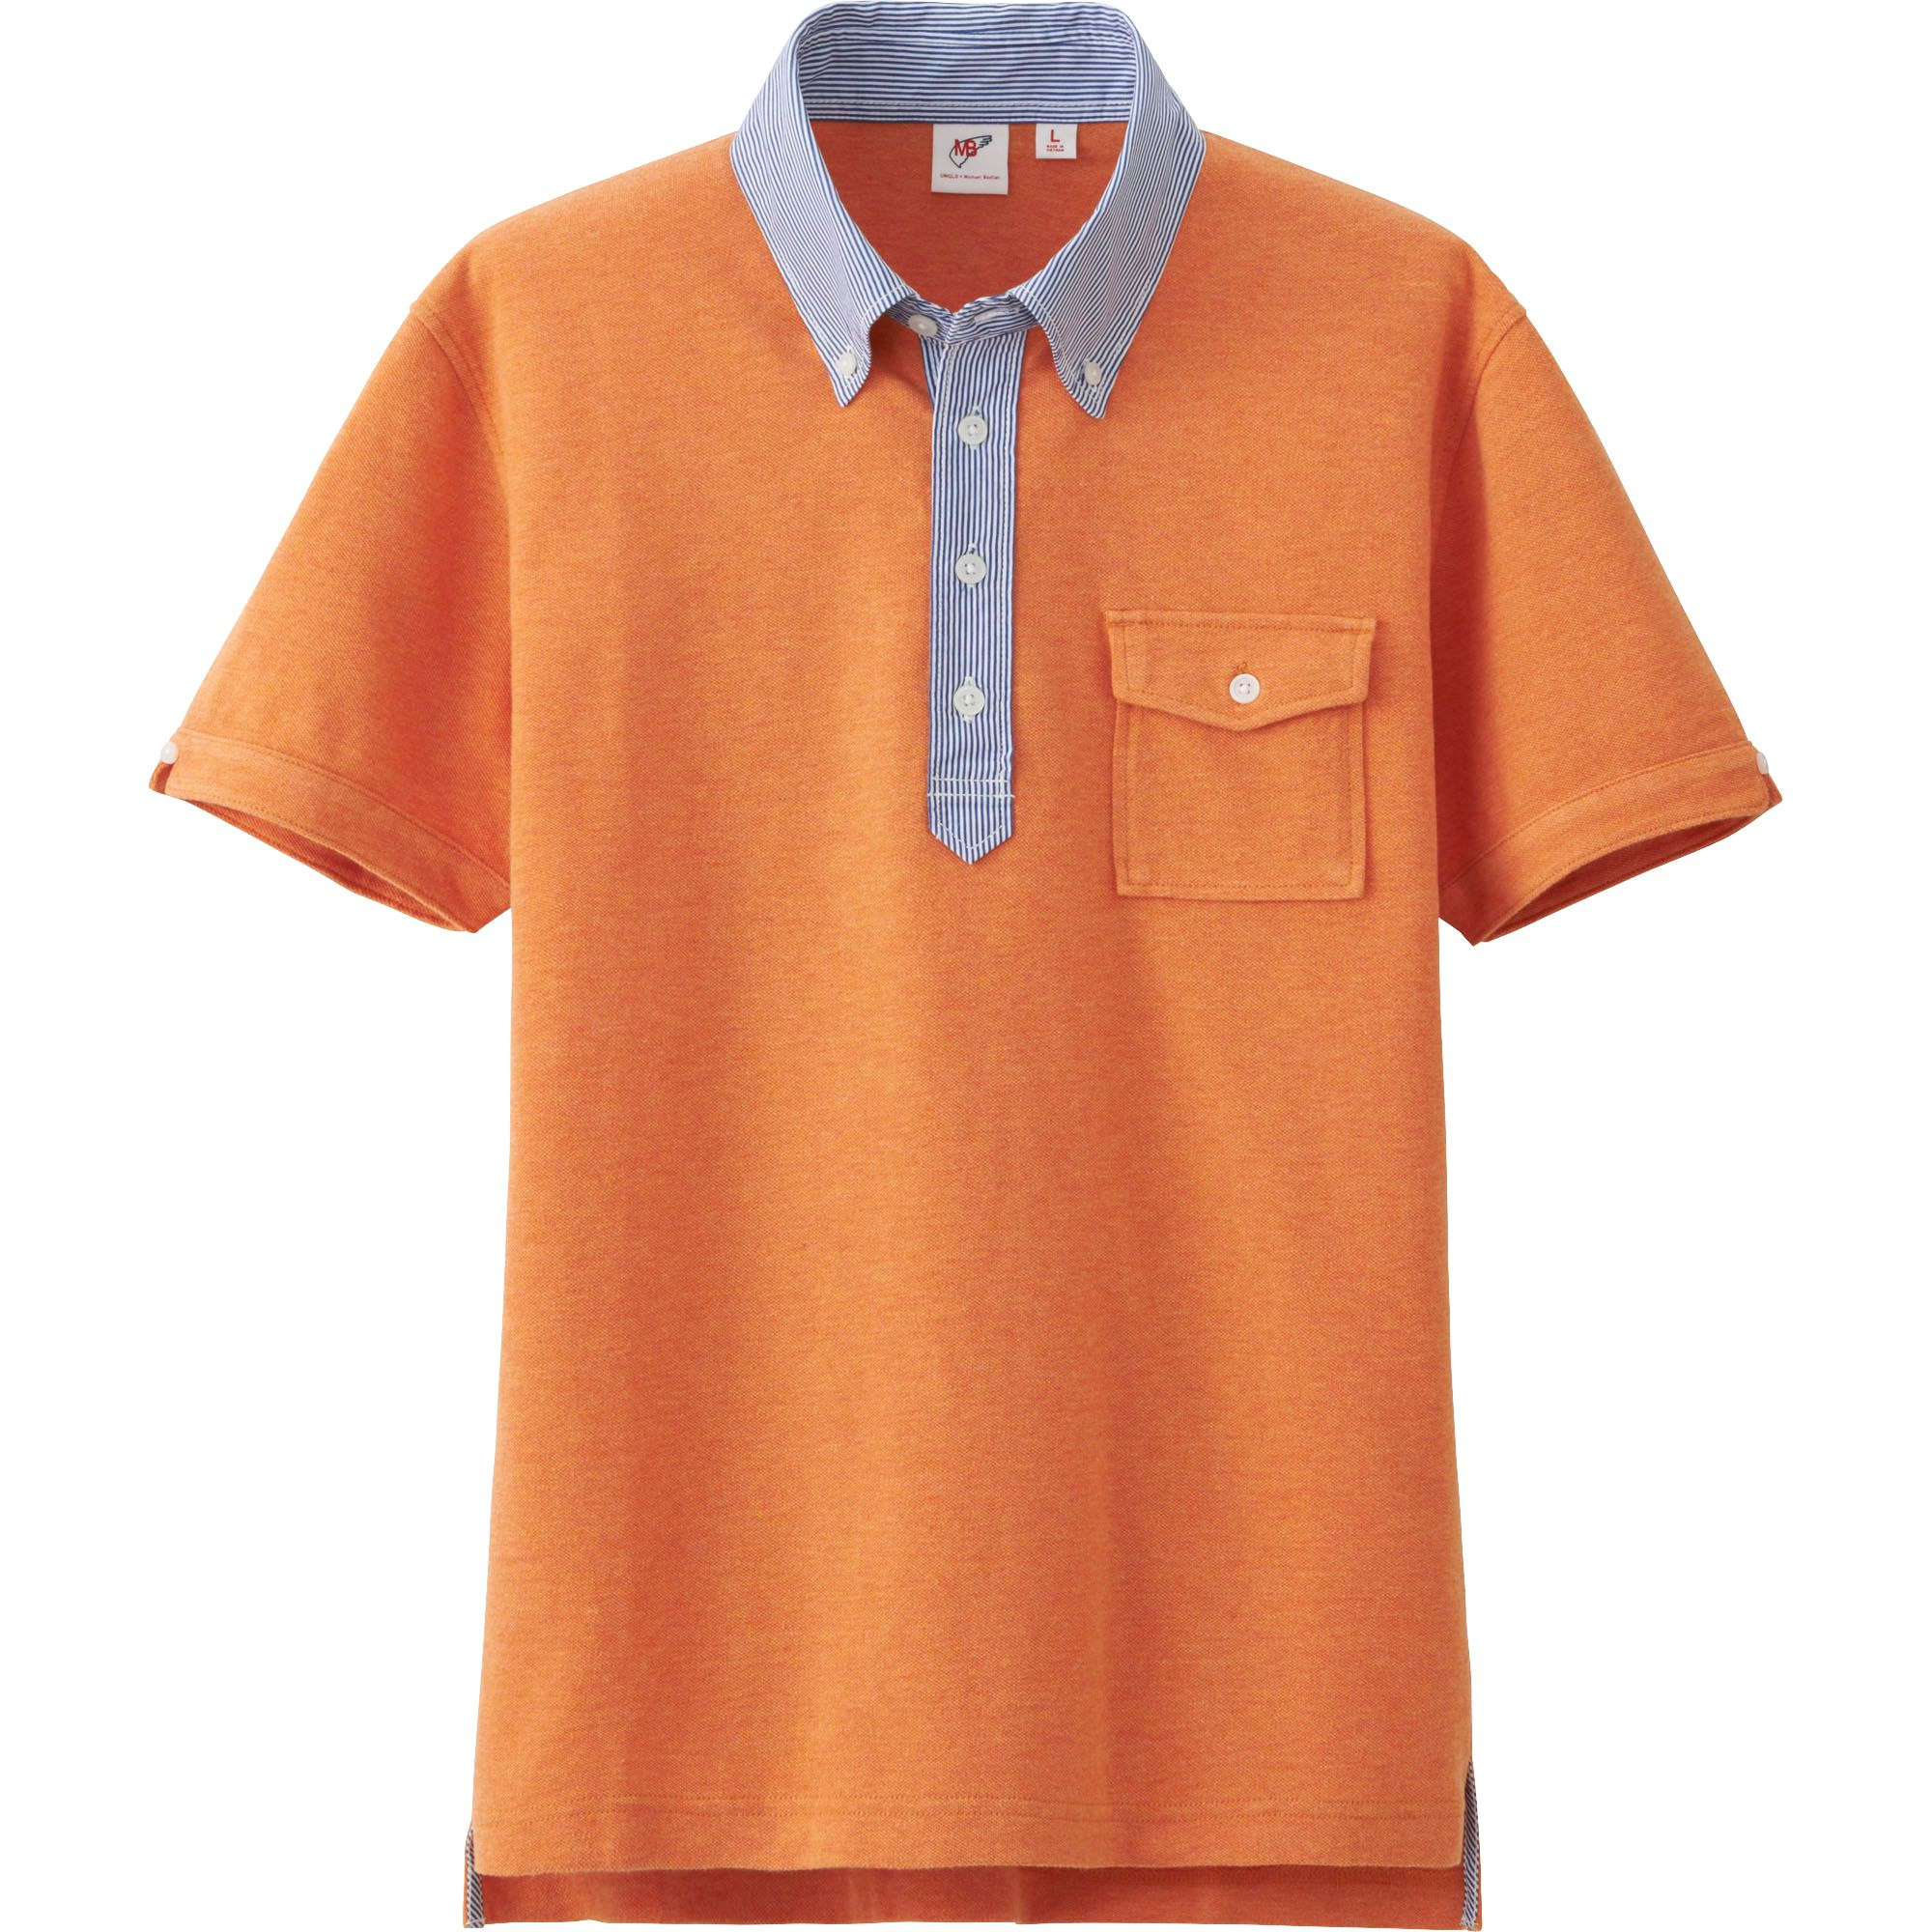 Uniqlo men washed short sleeve polo shirt by mb in orange for Mens orange polo shirt